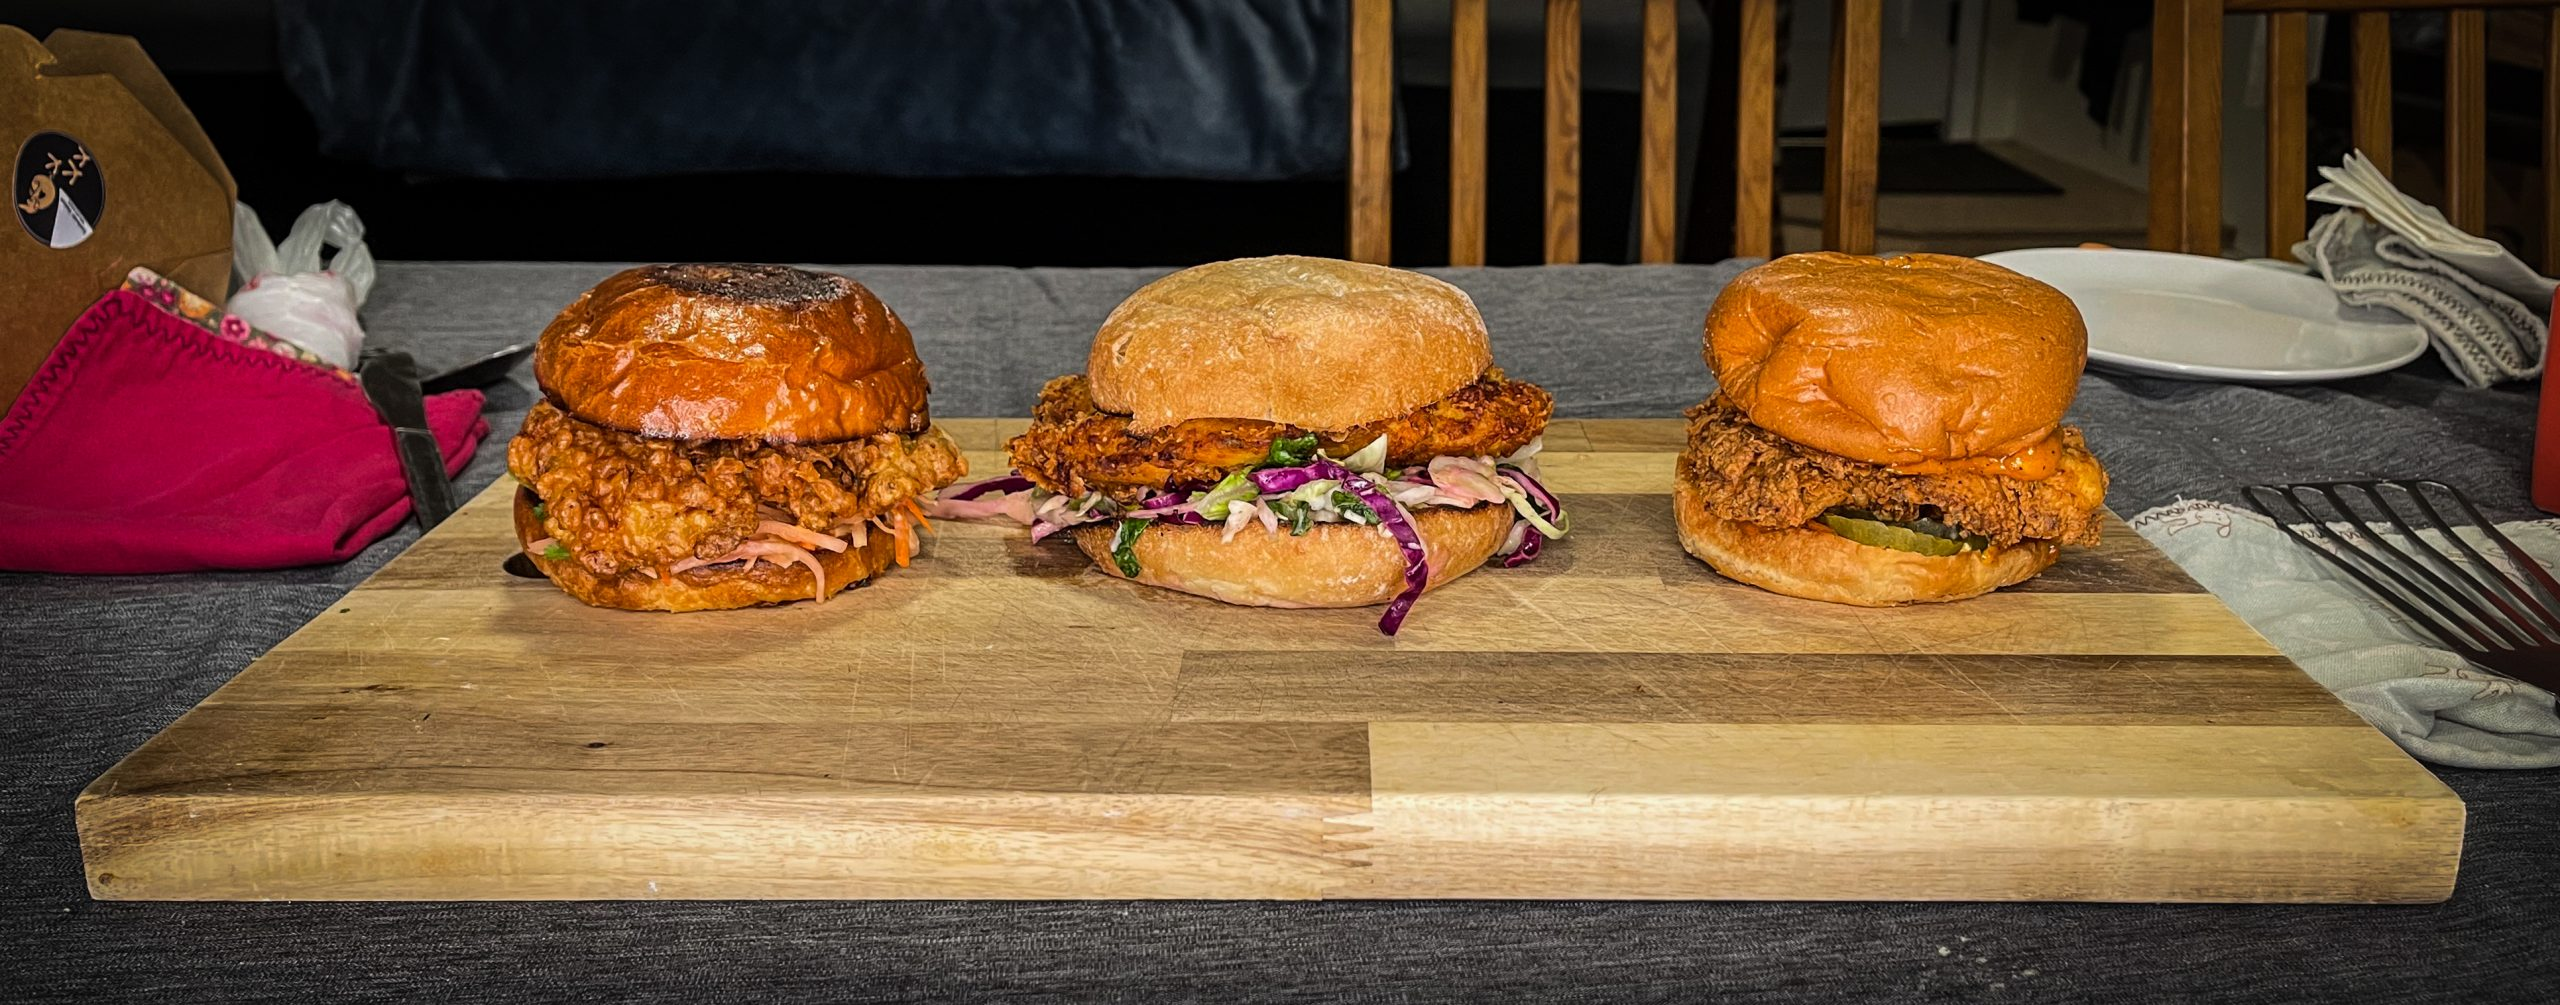 Three fried chicken sandwiches on a cutting board.